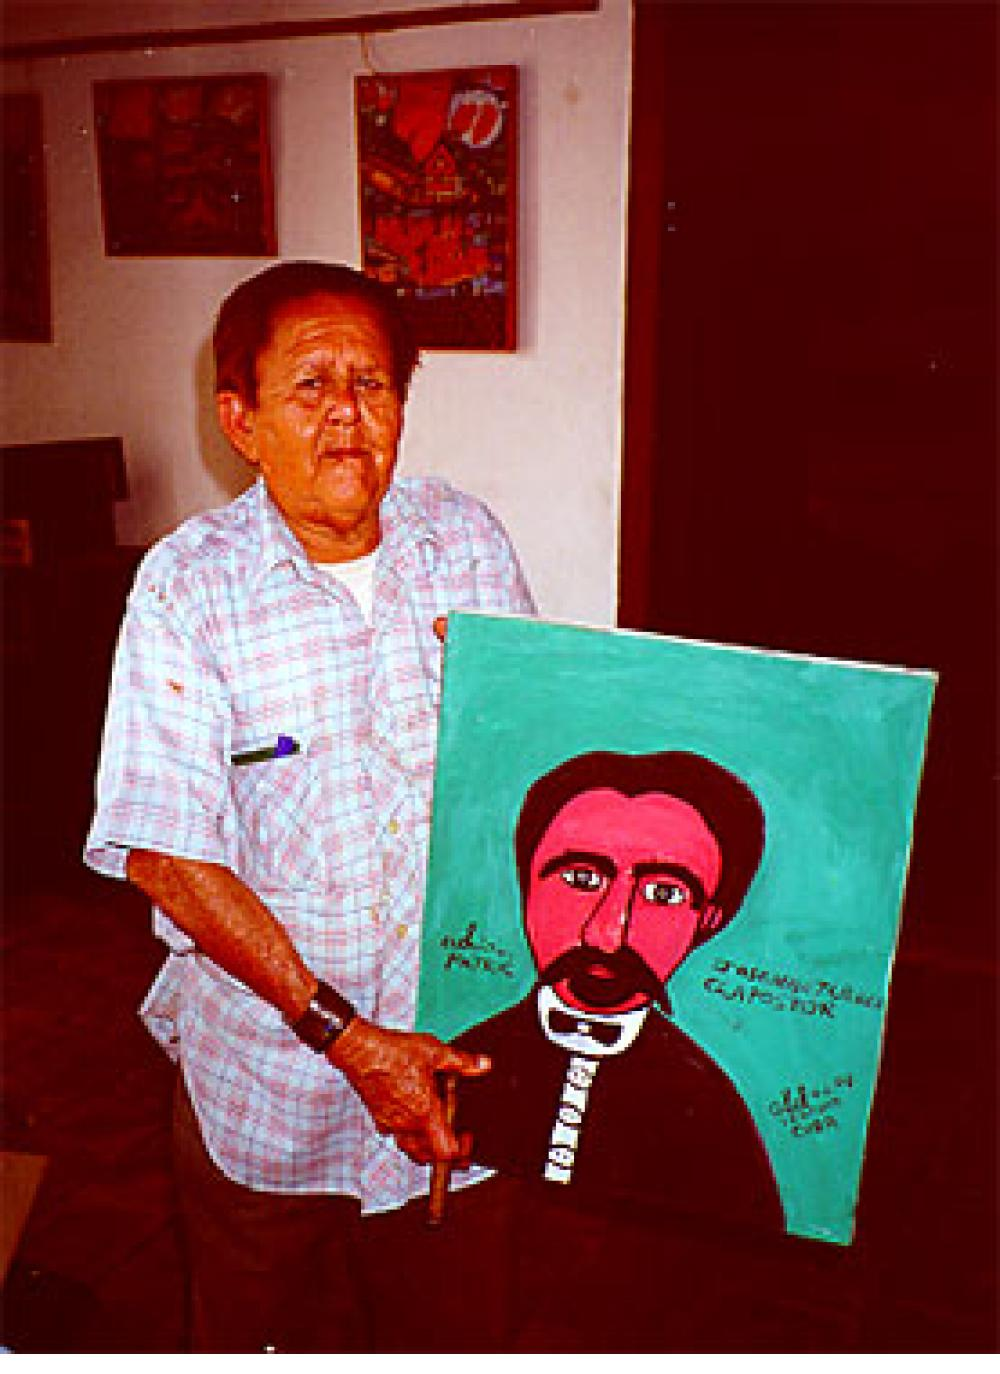 Abel Perez Mainegra with cigar and painting of Jose Marti. Trinidad, Cuba, 2000.